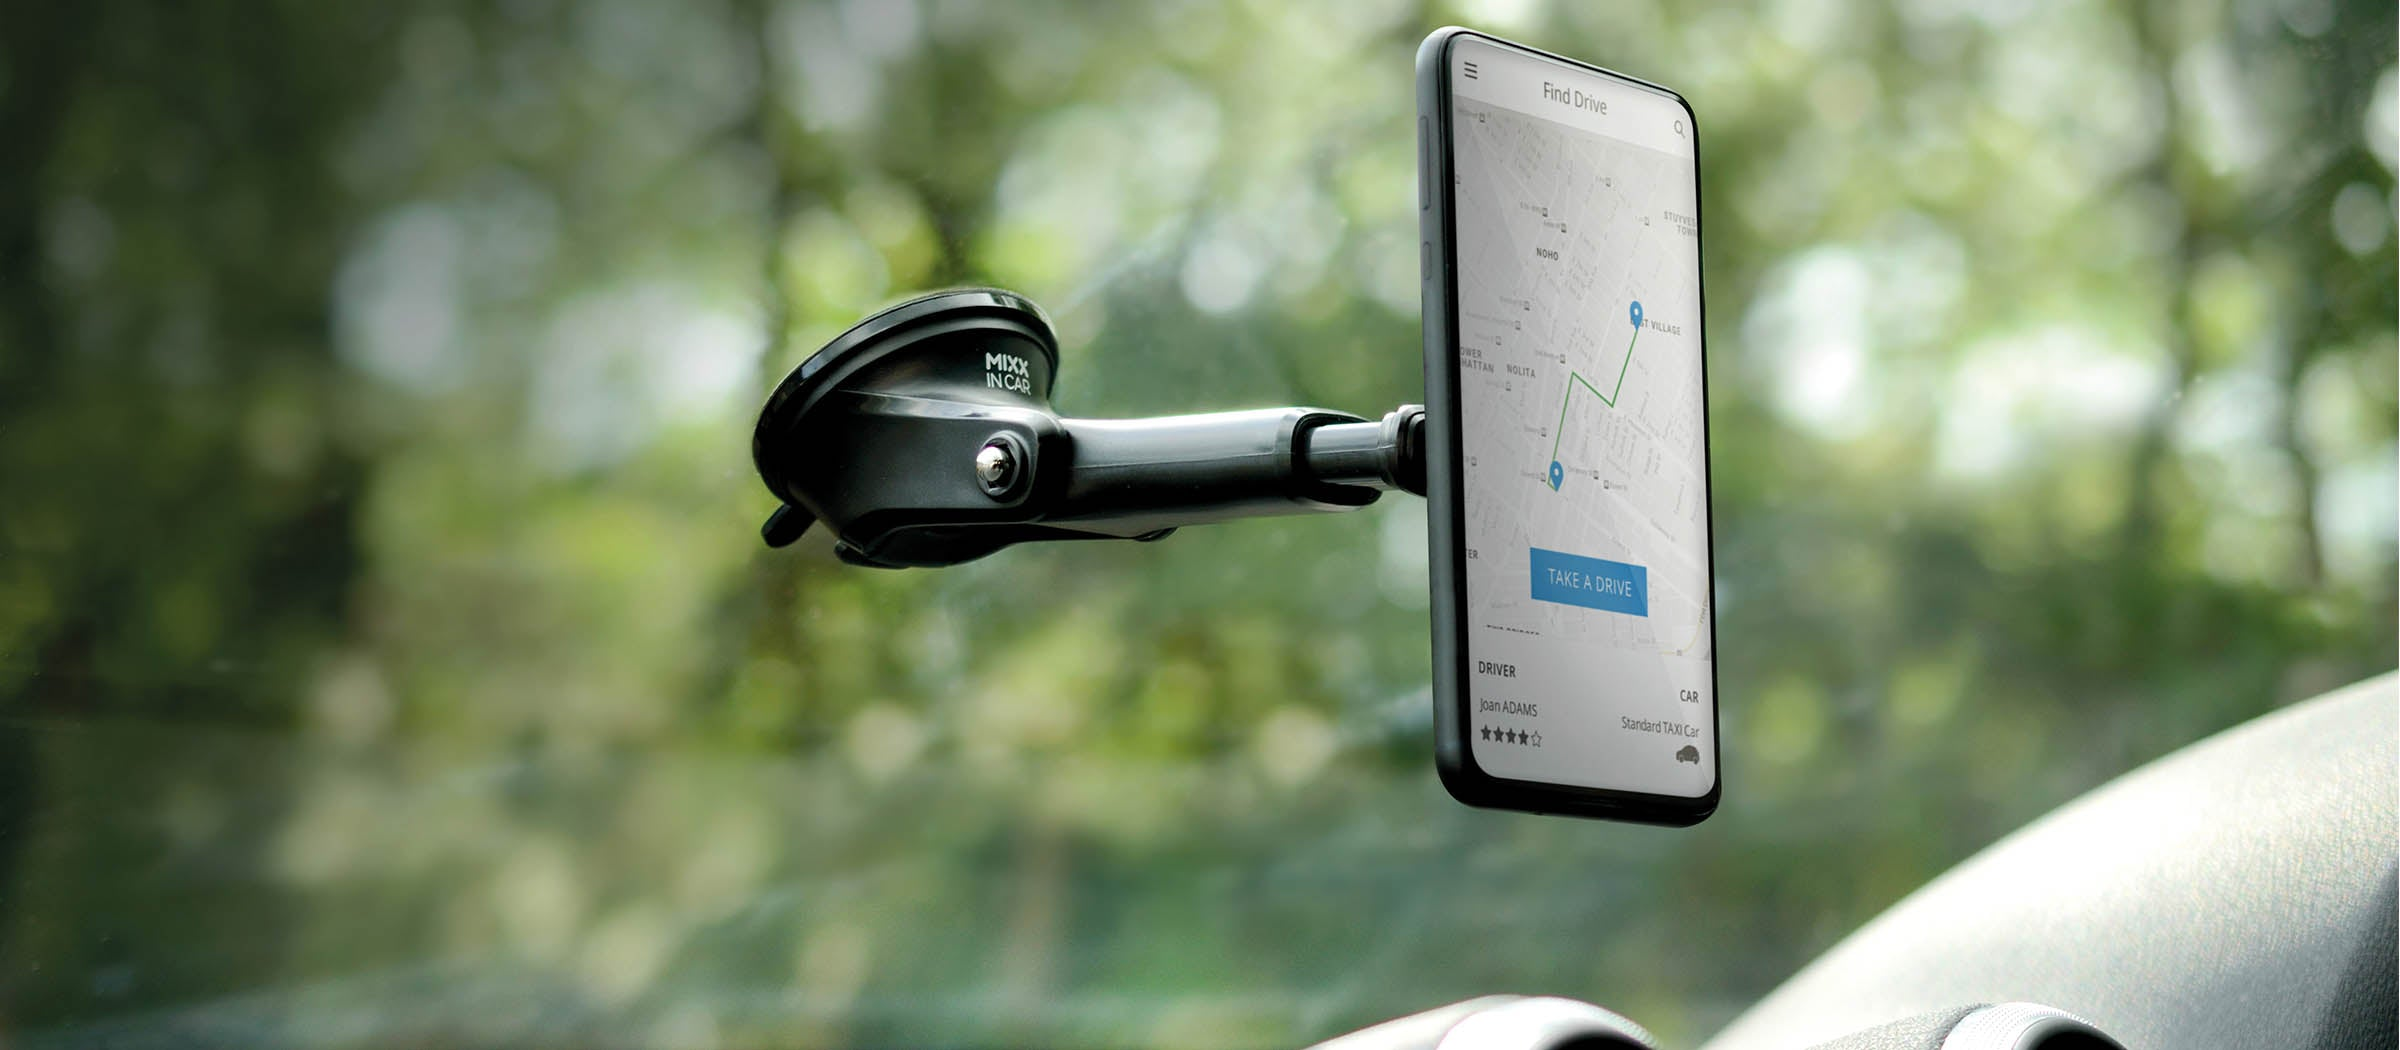 Magnetic long arm car mount